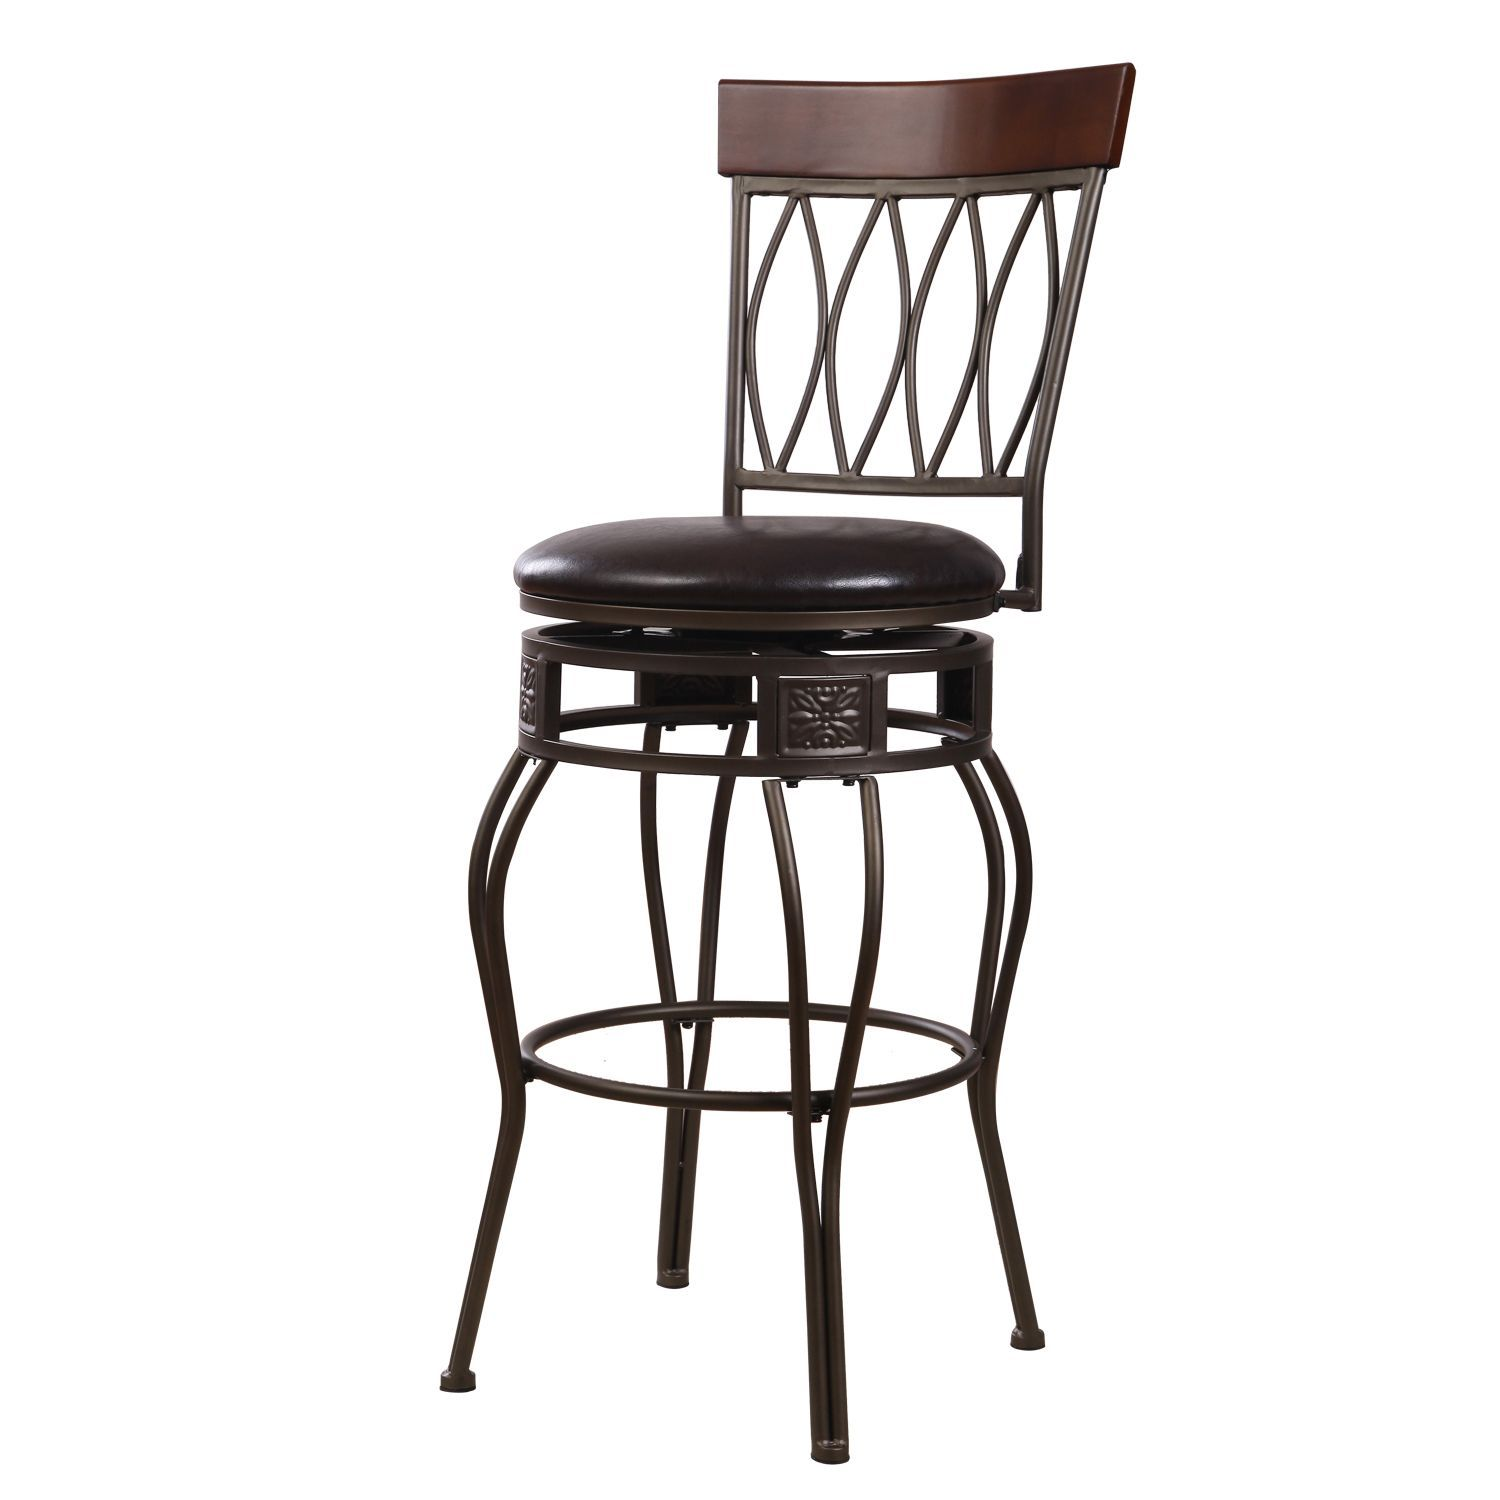 Patterned Bar Stools Awesome Inspiration Design